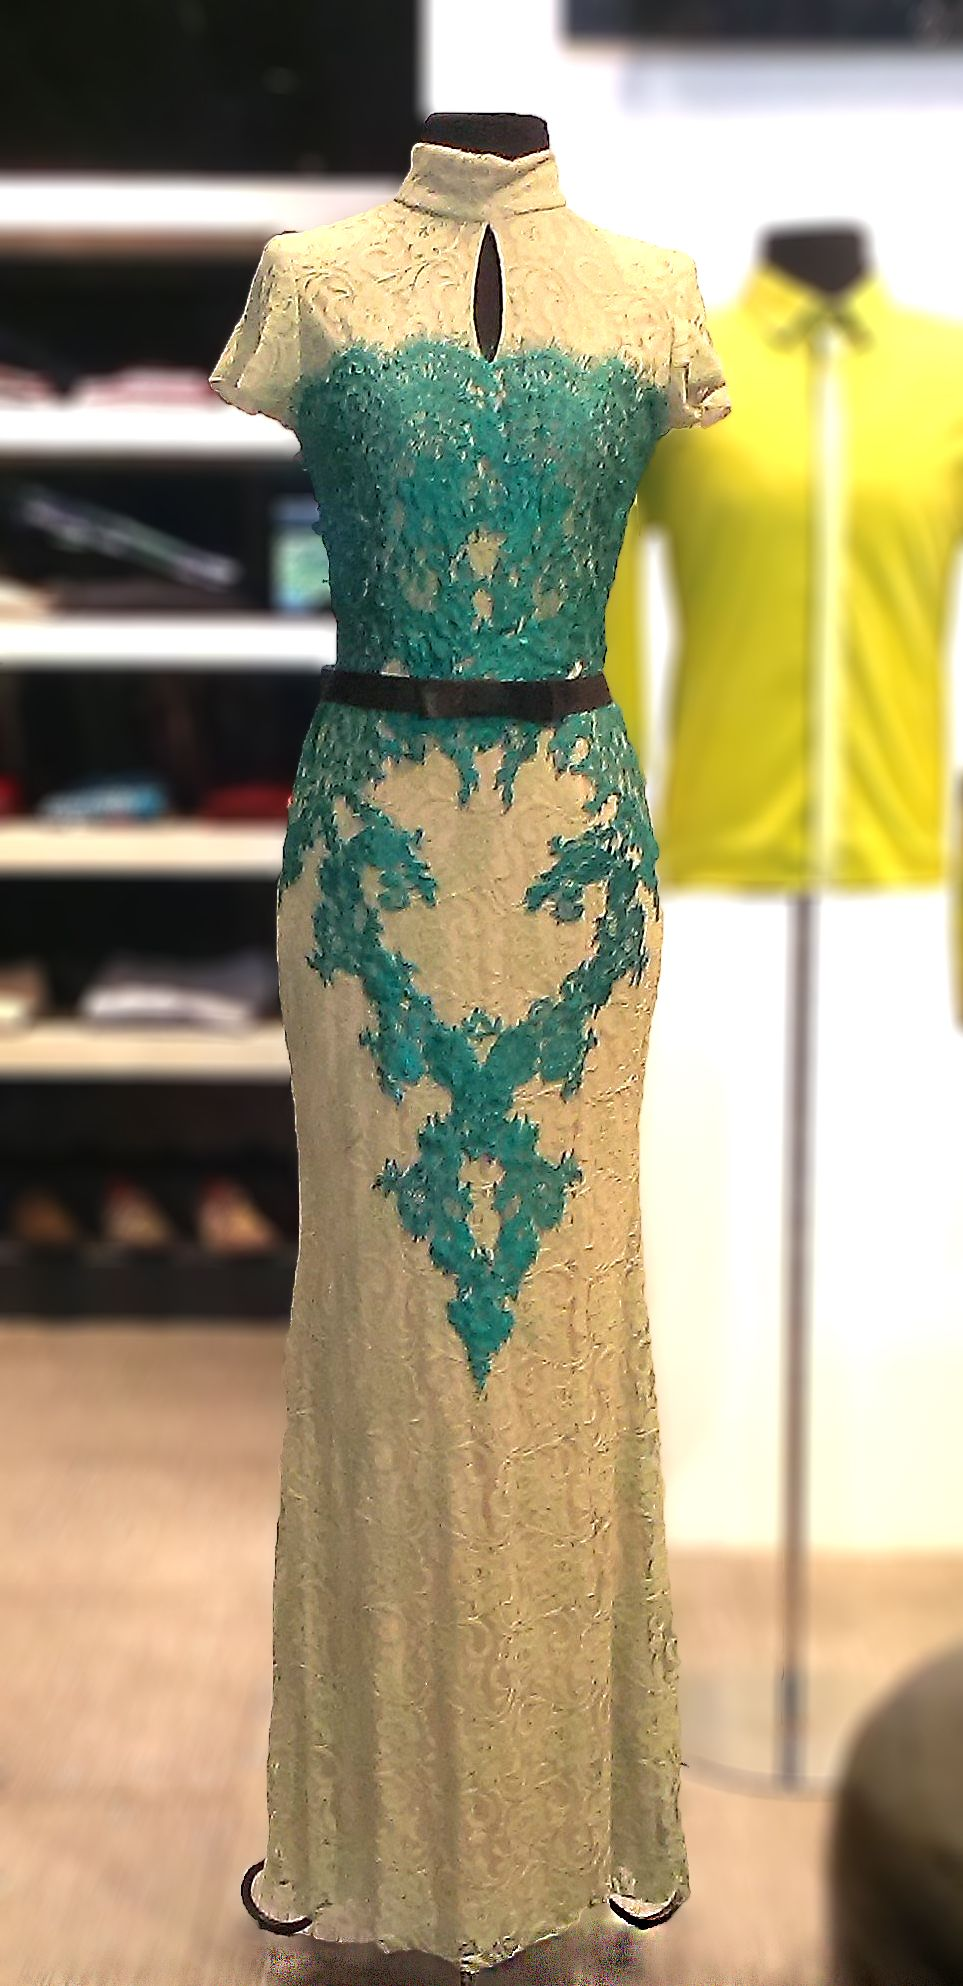 S Gown With Green Lace Accent And